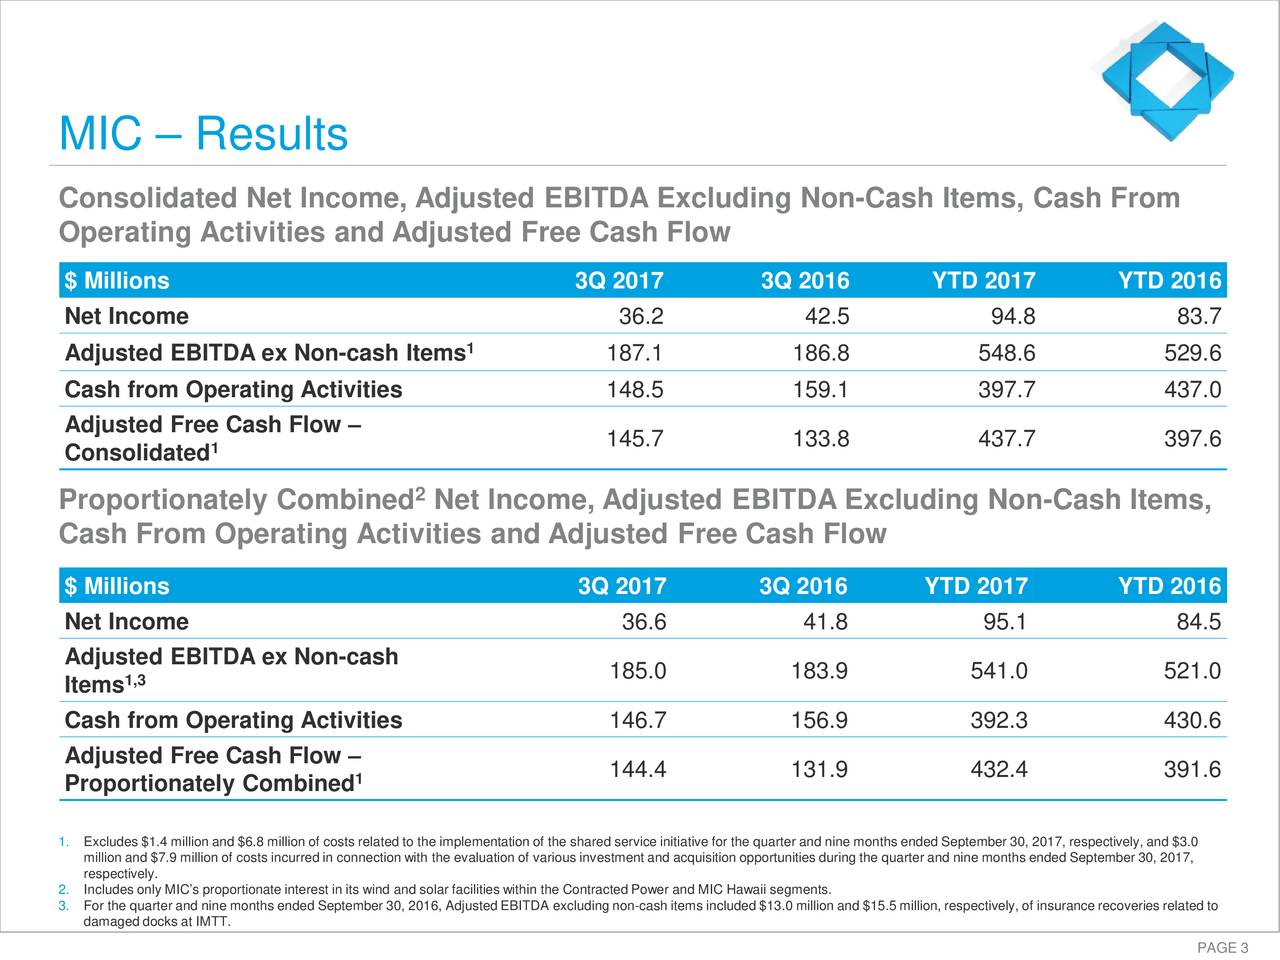 Consolidated Net Income, Adjusted EBITDA Excluding Non -Cash Items, Cash From Operating Activities and Adjusted Free Cash Flow $ Millions 3Q 2017 3Q 2016 YTD 2017 YTD 2016 Net Income 36.2 42.5 94.8 83.7 1 Adjusted EBITDA ex Non-cash Items 187.1 186.8 548.6 529.6 Cash from Operating Activities 148.5 159.1 397.7 437.0 Adjusted Free Cash Flow – 1 145.7 133.8 437.7 397.6 Consolidated Proportionately Combined Net Income, Adjusted EBITDA Excluding Non-Cash Items, Cash From Operating Activities and Adjusted Free Cash Flow $ Millions 3Q 2017 3Q 2016 YTD 2017 YTD 2016 Net Income 36.6 41.8 95.1 84.5 Adjusted EBITDA ex Non-cash 185.0 183.9 541.0 521.0 Items1,3 Cash from Operating Activities 146.7 156.9 392.3 430.6 Adjusted Free Cash Flow – 1 144.4 131.9 432.4 391.6 Proportionately Combined 1.Excludes $1.4 million and $6.8 million of costs related to the implementation of the shared service initiative for the quartreand nine months ended September 30, 2017, respectively, and $3.0 million and $7.9 million ofcosts incurred in connection with the evaluation of various investment andacquisitionopportunities during the quarter and nine months ended September 30, 2017, respectively. 2.Includes only MIC's proportionate interest in its wind and solar facilis.es within the Contracted Power and MIC Hawaii segmetn 3.damaged docks at IMTT.ne months ended September 30, 2016, Adjusted EBITDAexcluding non-cash items included $13.0 million and $15.5 million, respectively, of insurance recoveries related to